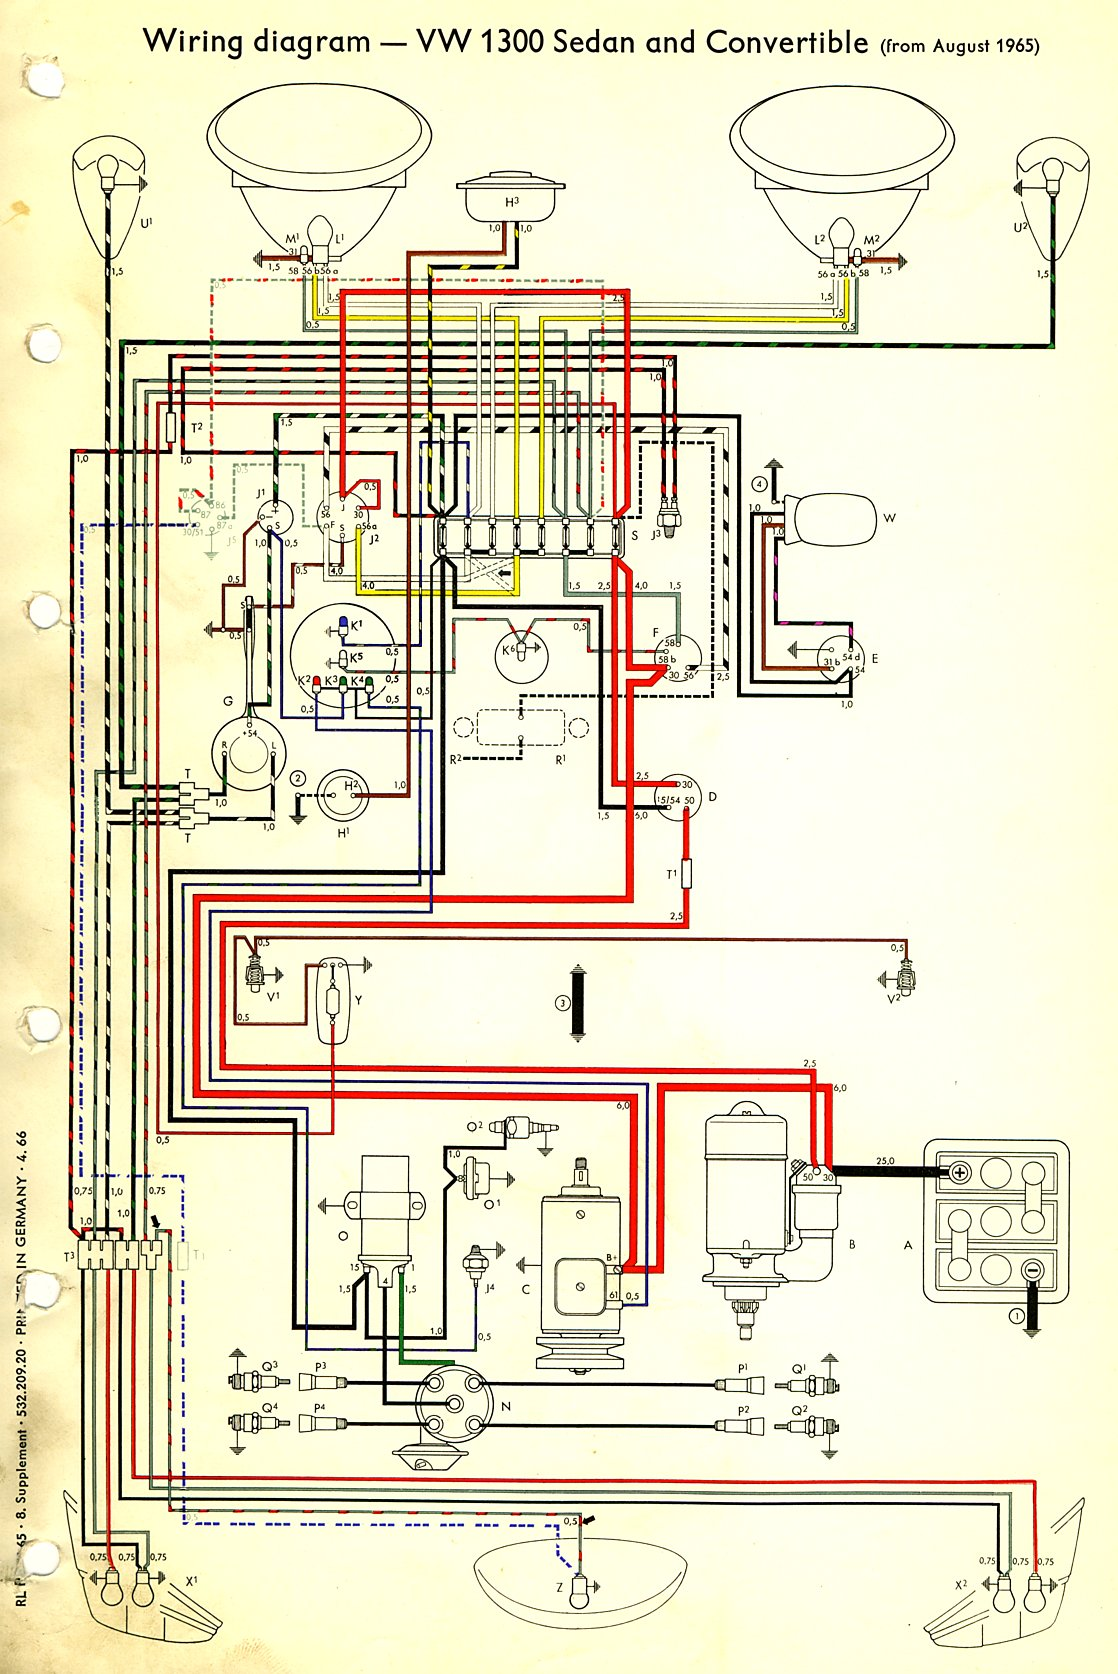 1971 Vw Super Beetle Auto Shift Wire Diagram Wiring Libraries Automatic Stick Circuit For Type 1 Sedan 111 And 113 From 1966 Schematic Data1966 Thegoldenbug Com